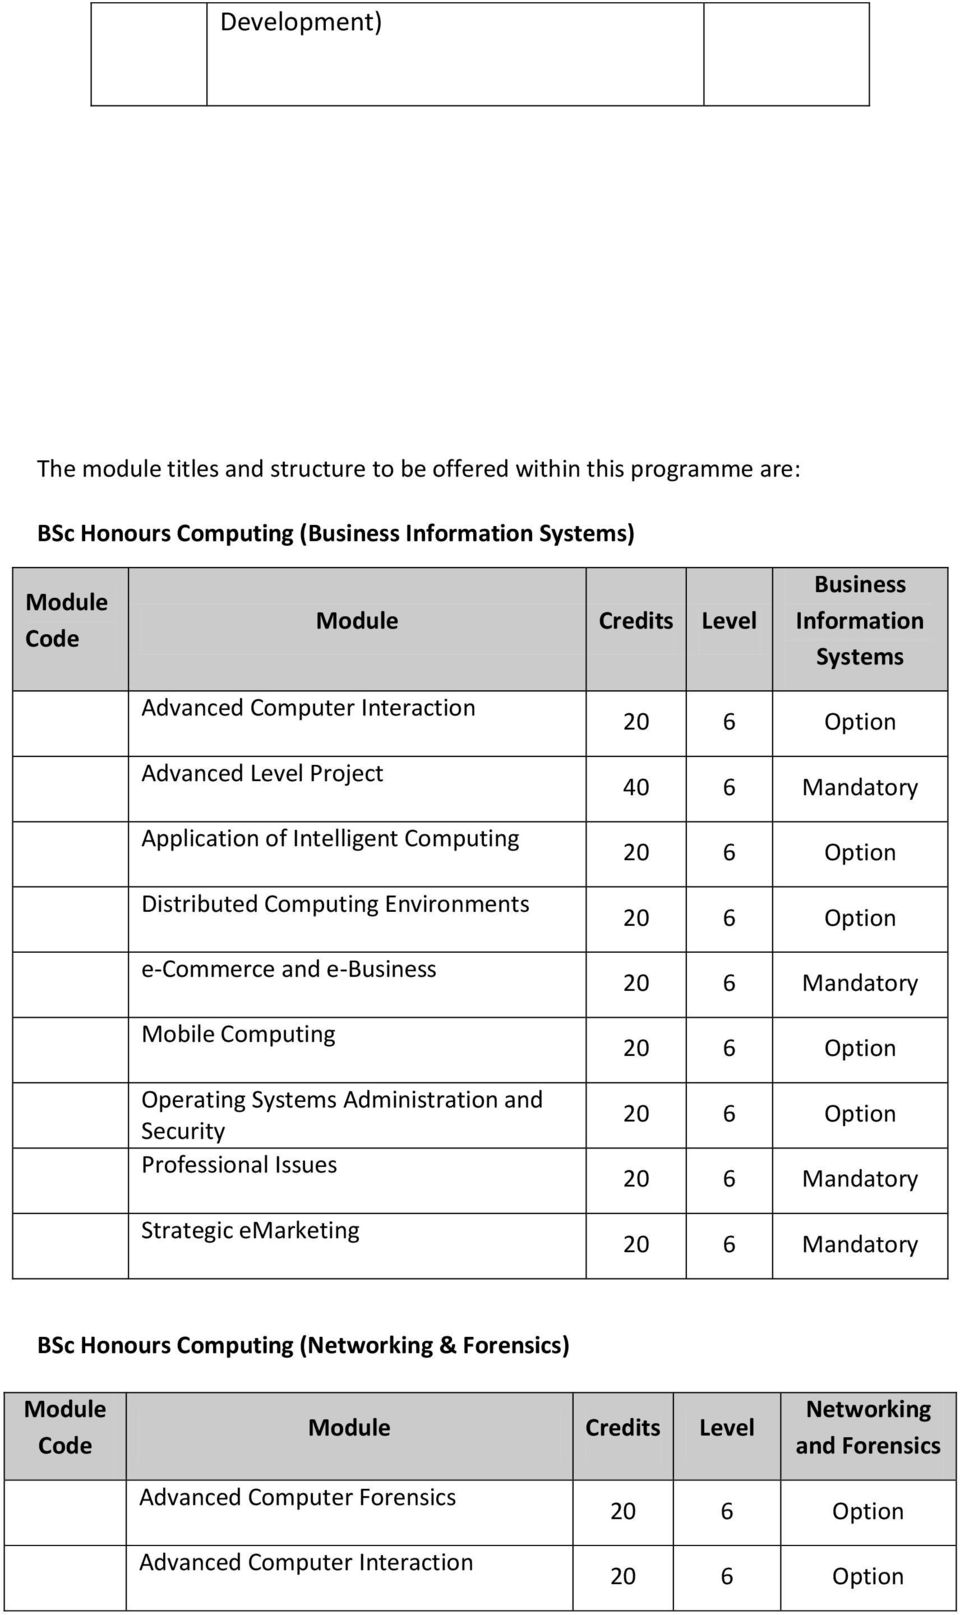 Environments e-commerce and e-business Mobile Computing Operating Systems Administration and Security Professional Issues Strategic emarketing 40 6 Mandatory